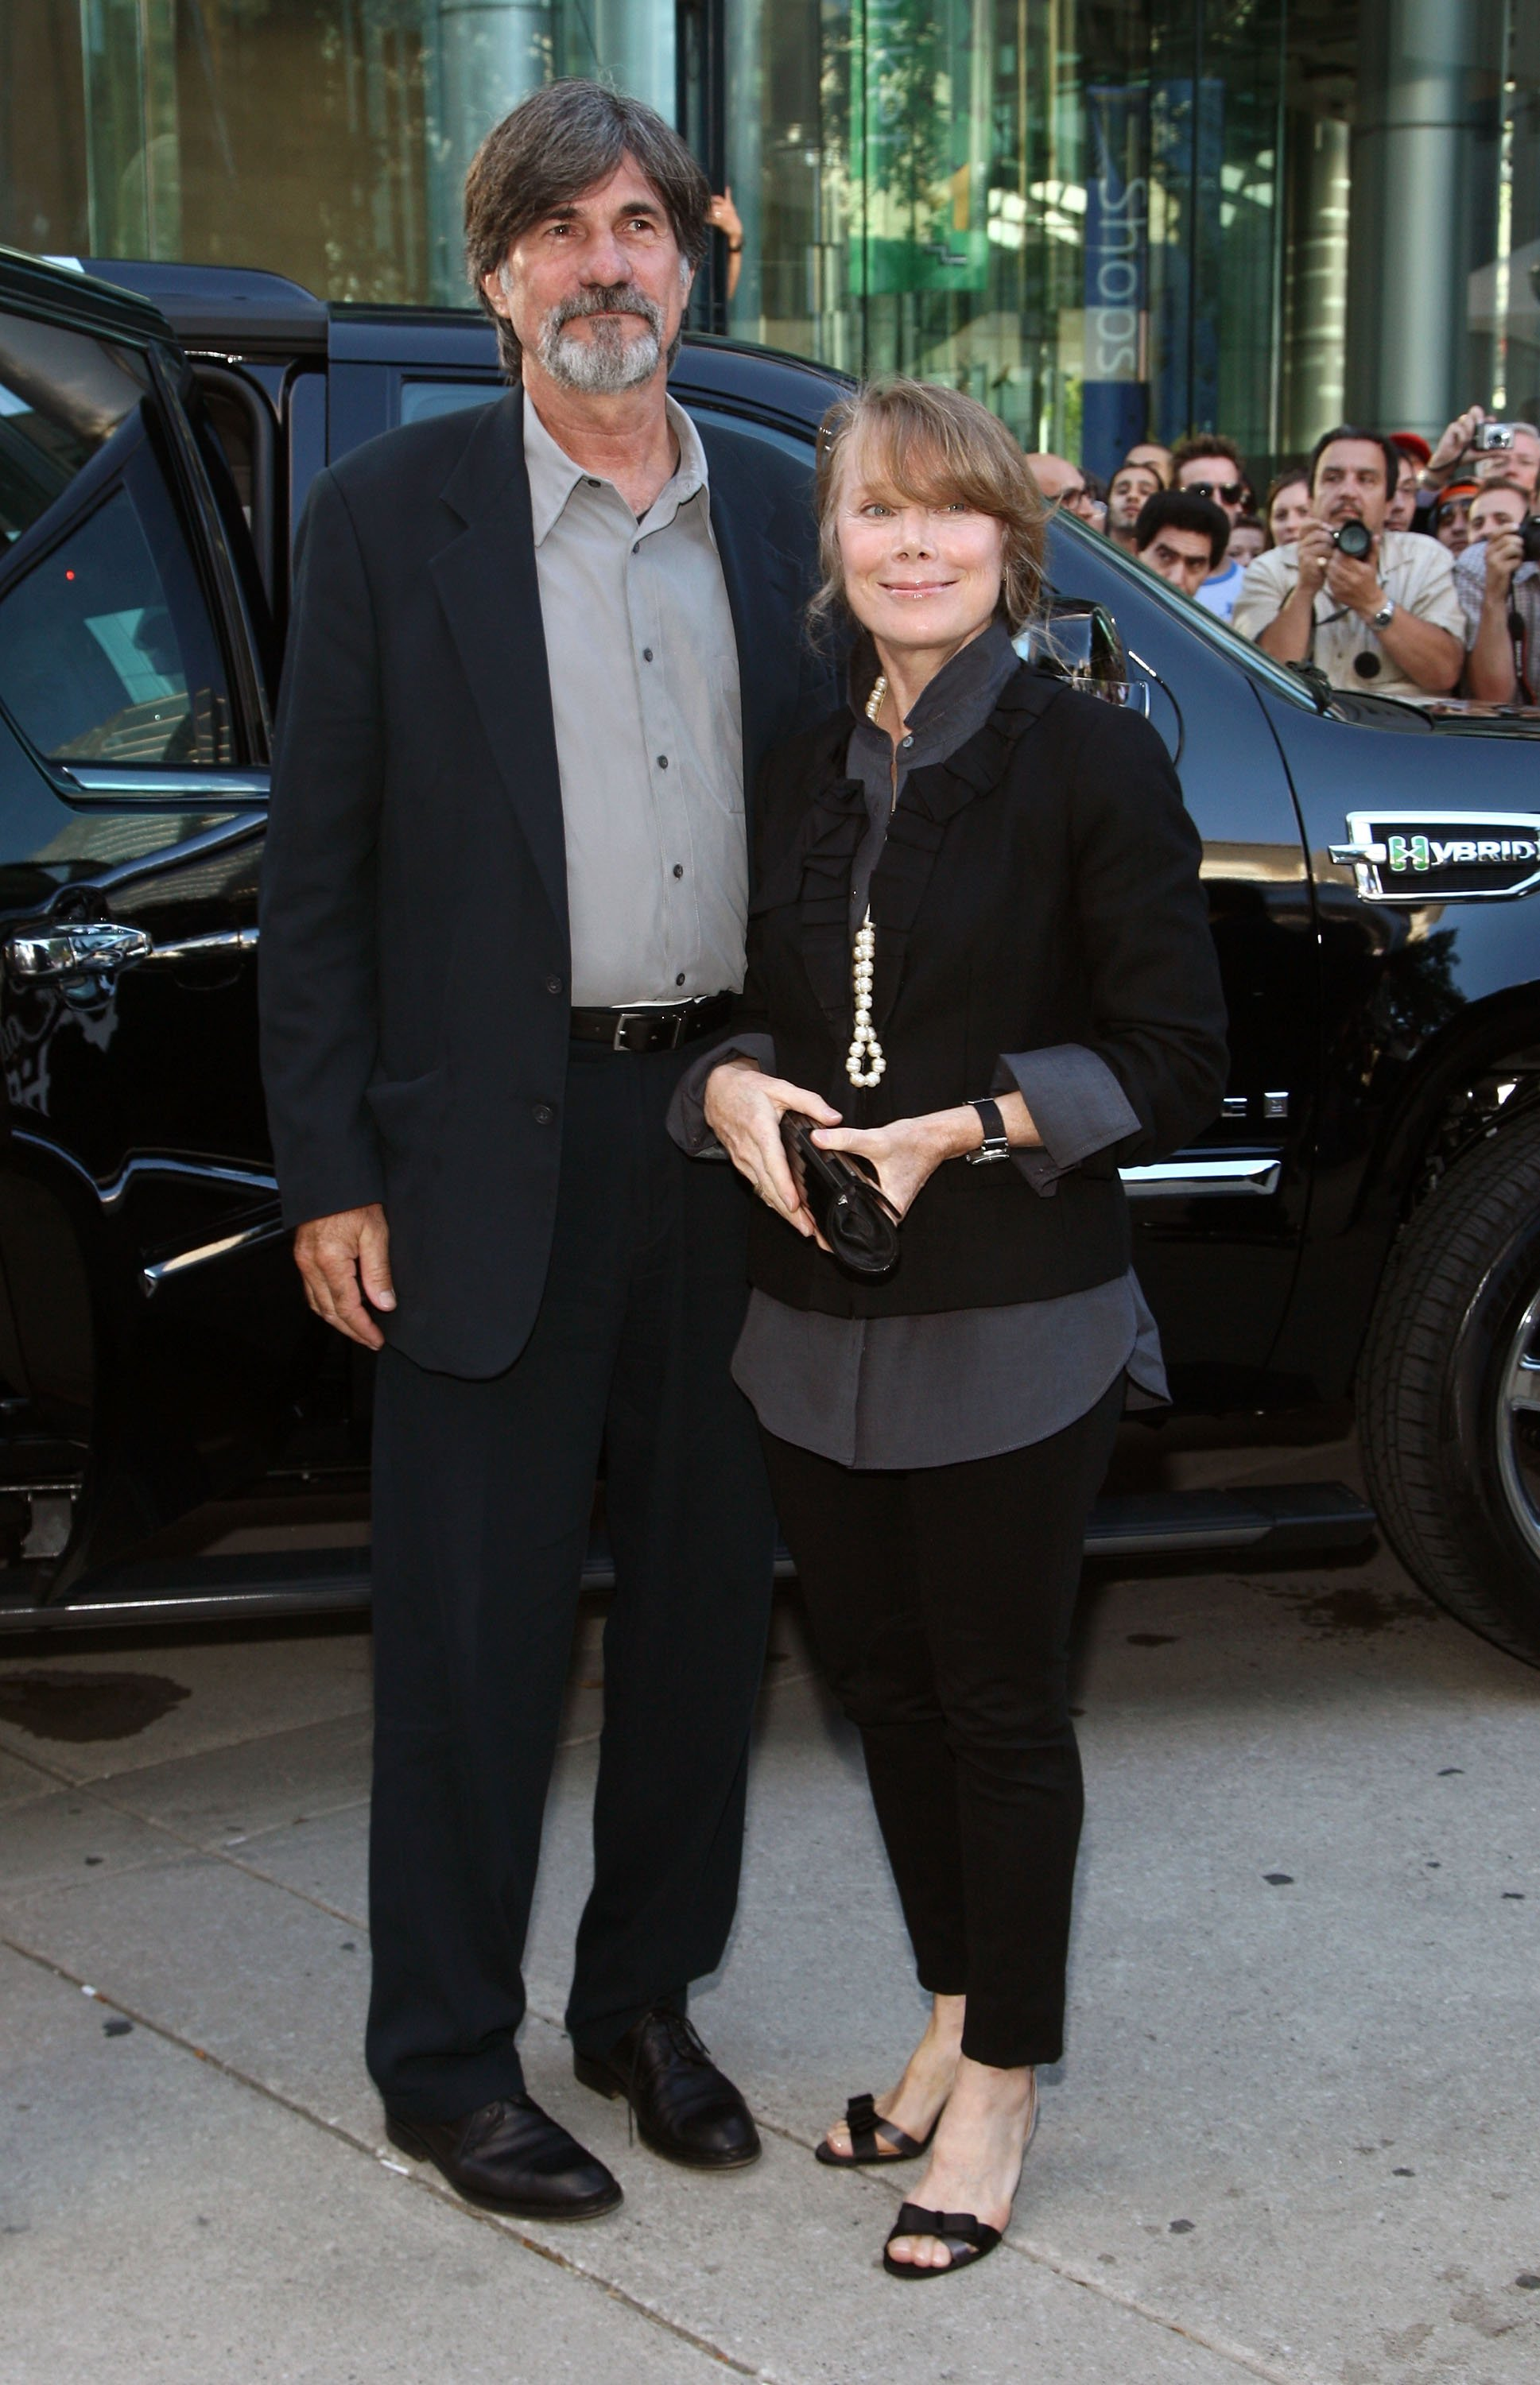 Sissy Spacek and Jack Fisk during the 2009 Toronto International Film Festival. | Photo: Getty Images